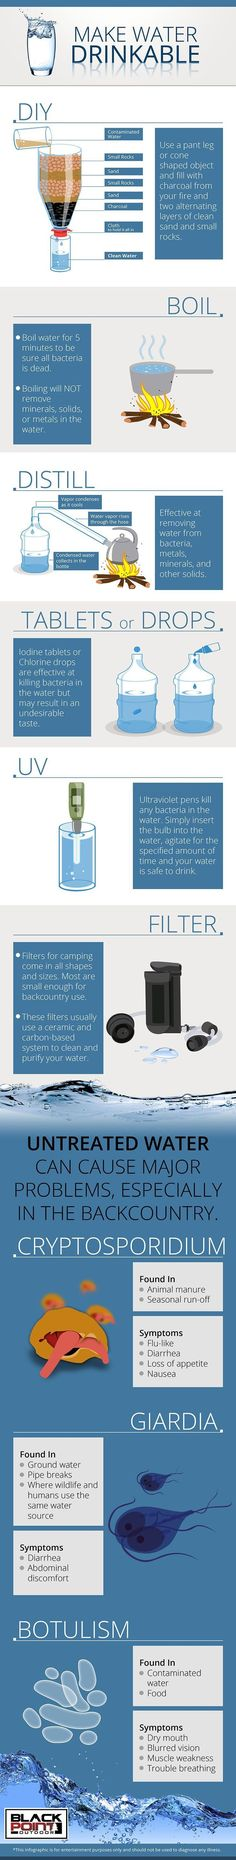 make water drinkable infographic - Tap The Link Now To Find Gadgets for Survival and Outdoor Camping Water Survival, Survival Life, Homestead Survival, Wilderness Survival, Camping Survival, Outdoor Survival, Survival Prepping, Emergency Preparedness, Survival Gear